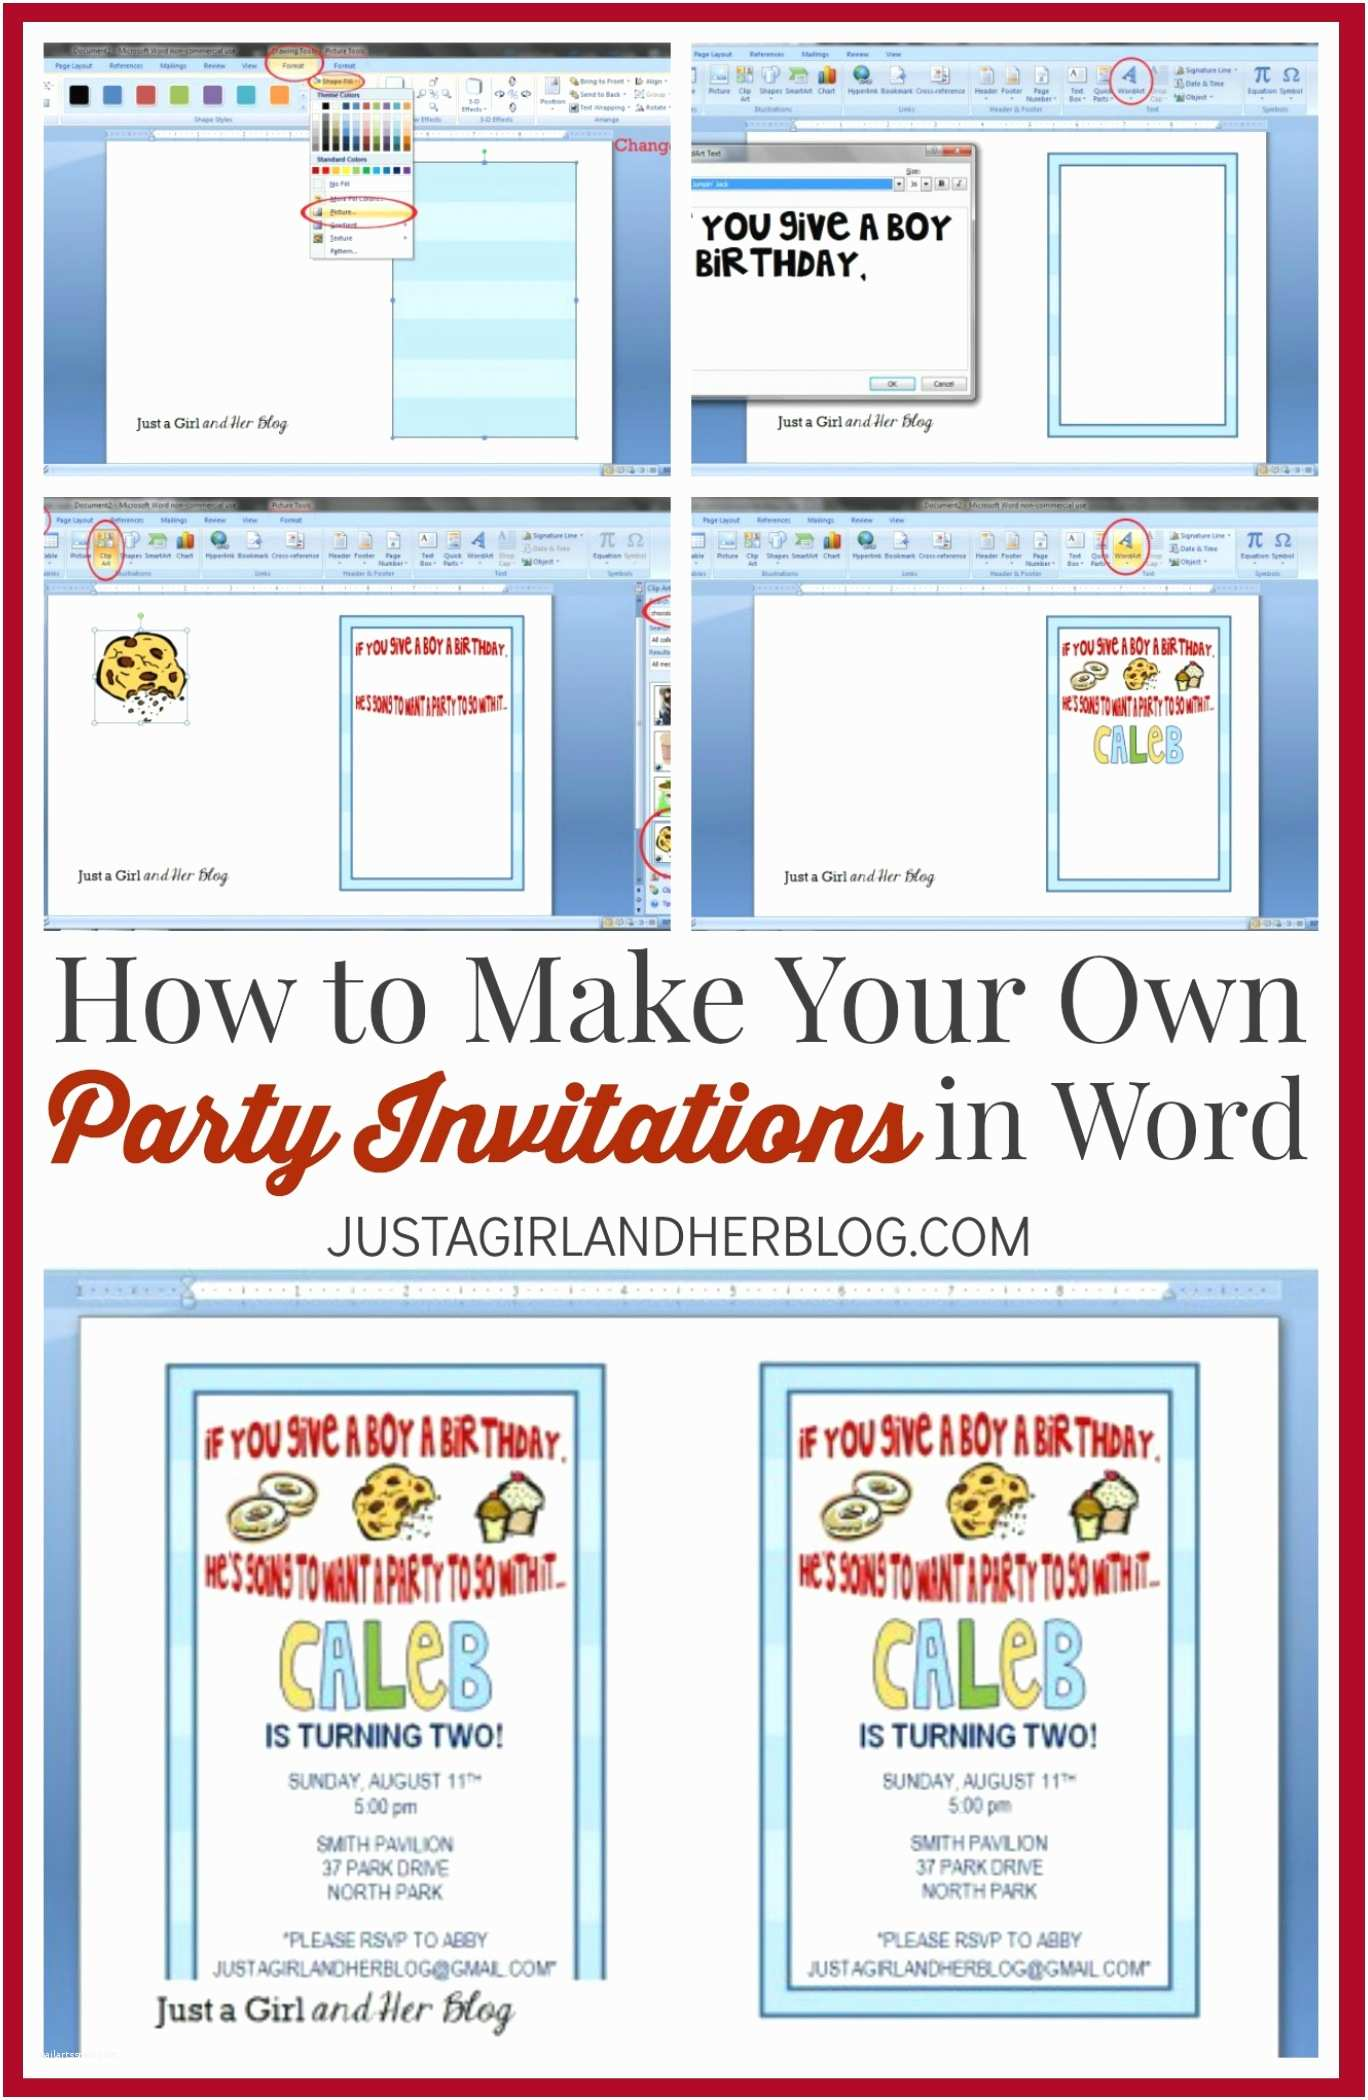 How to Make Own Wedding Invitations How to Make Your Own Party Invitations Just A Girl and